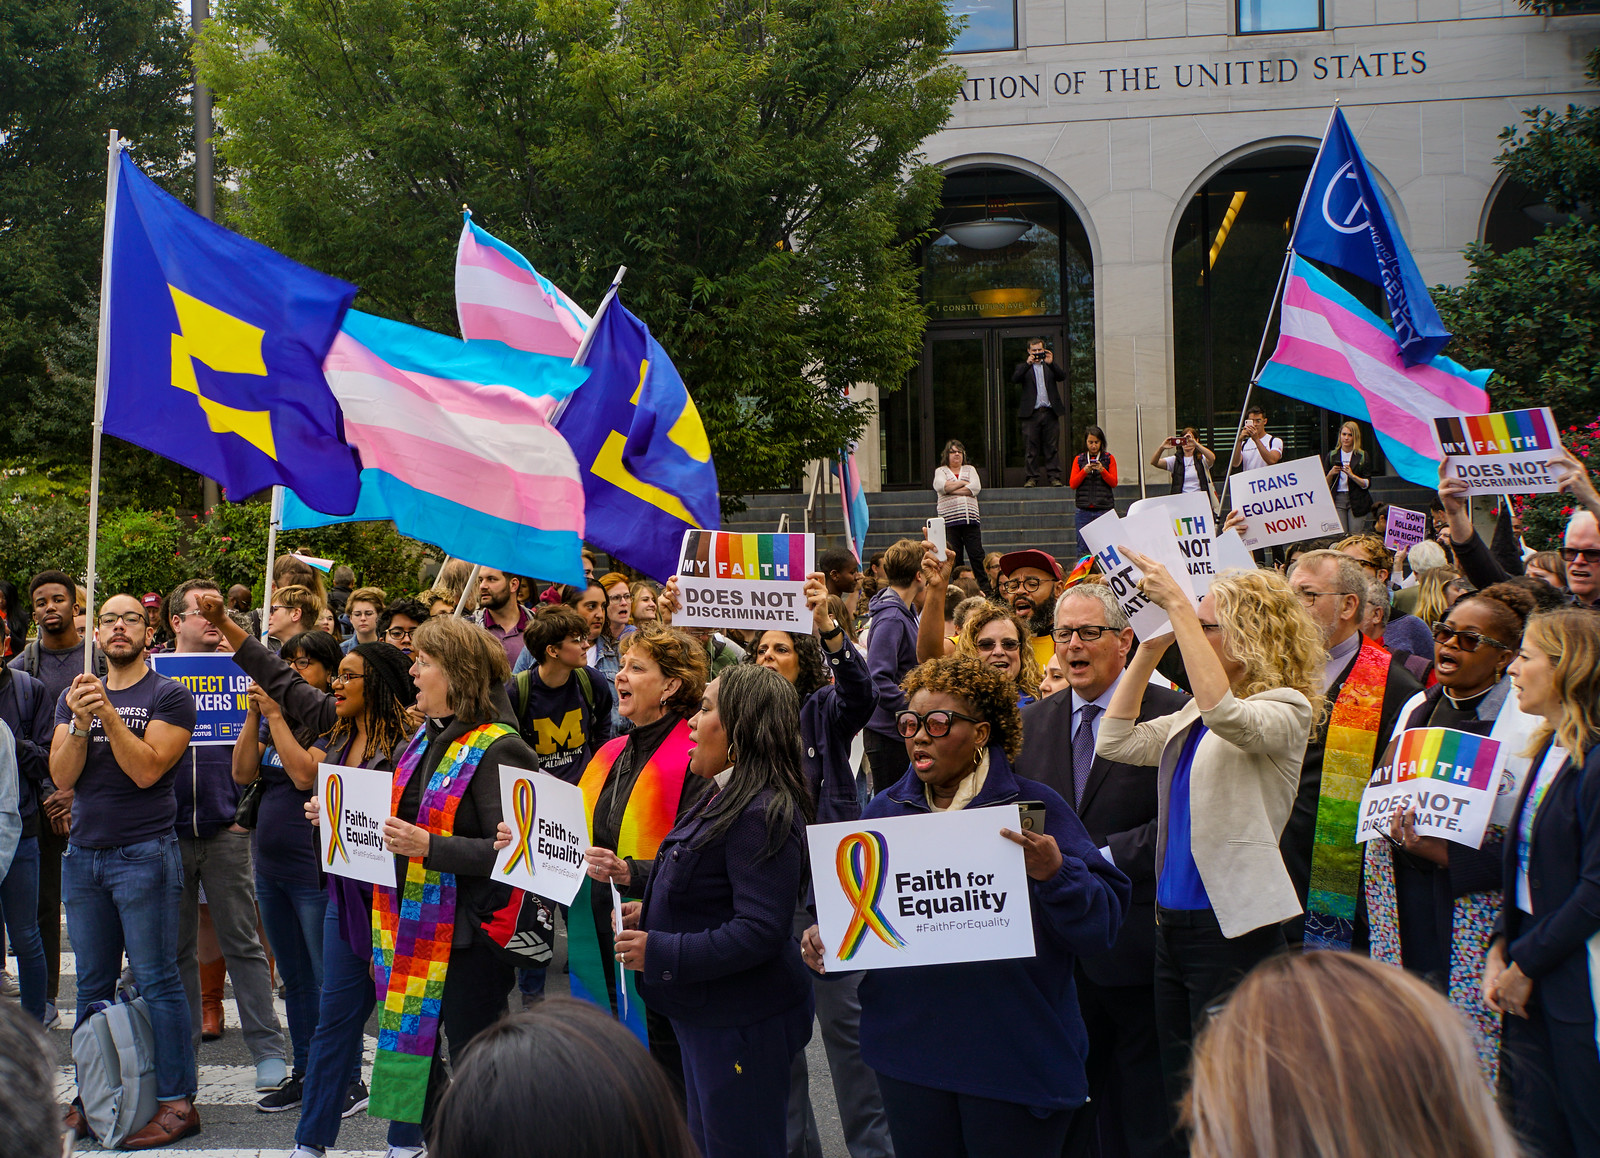 2019.10.08 SCOTUS Protest for LGBTQ Equality, Washington, DC USA 281 24020